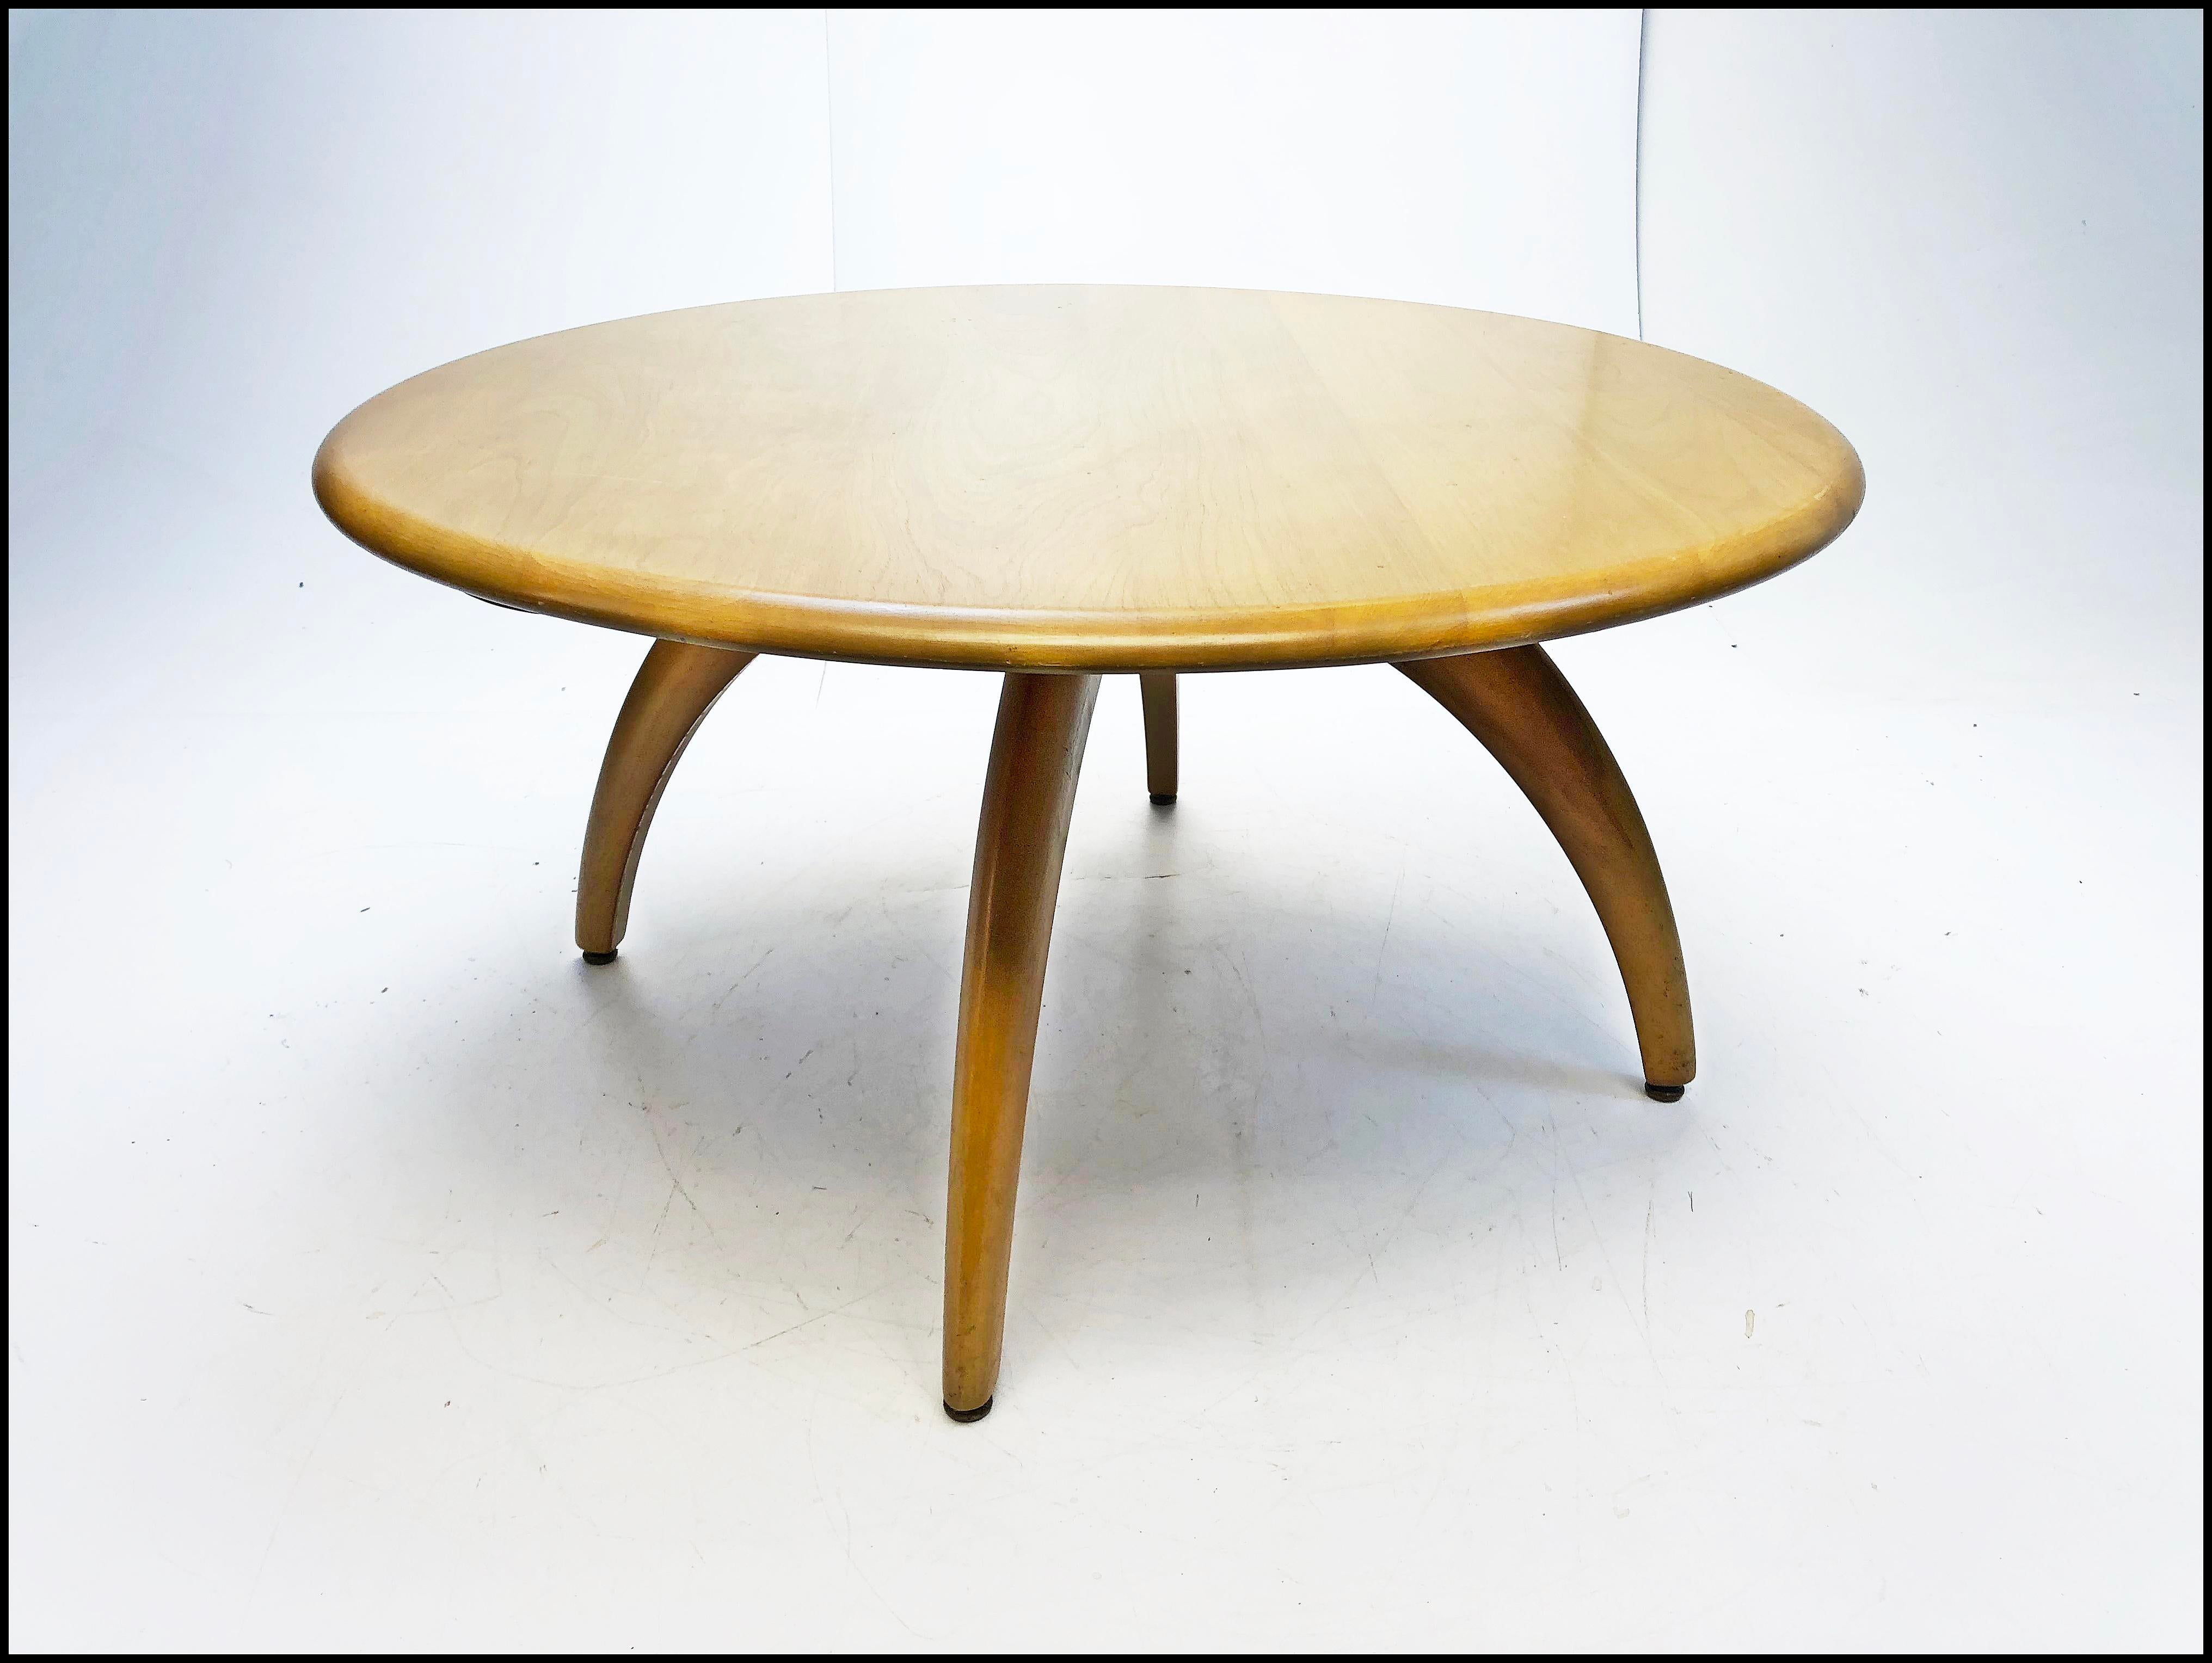 Exceptionnel Mid Century Modern Heywood Wakefield Lazy Susan Coffee Table   Image 5 Of 13